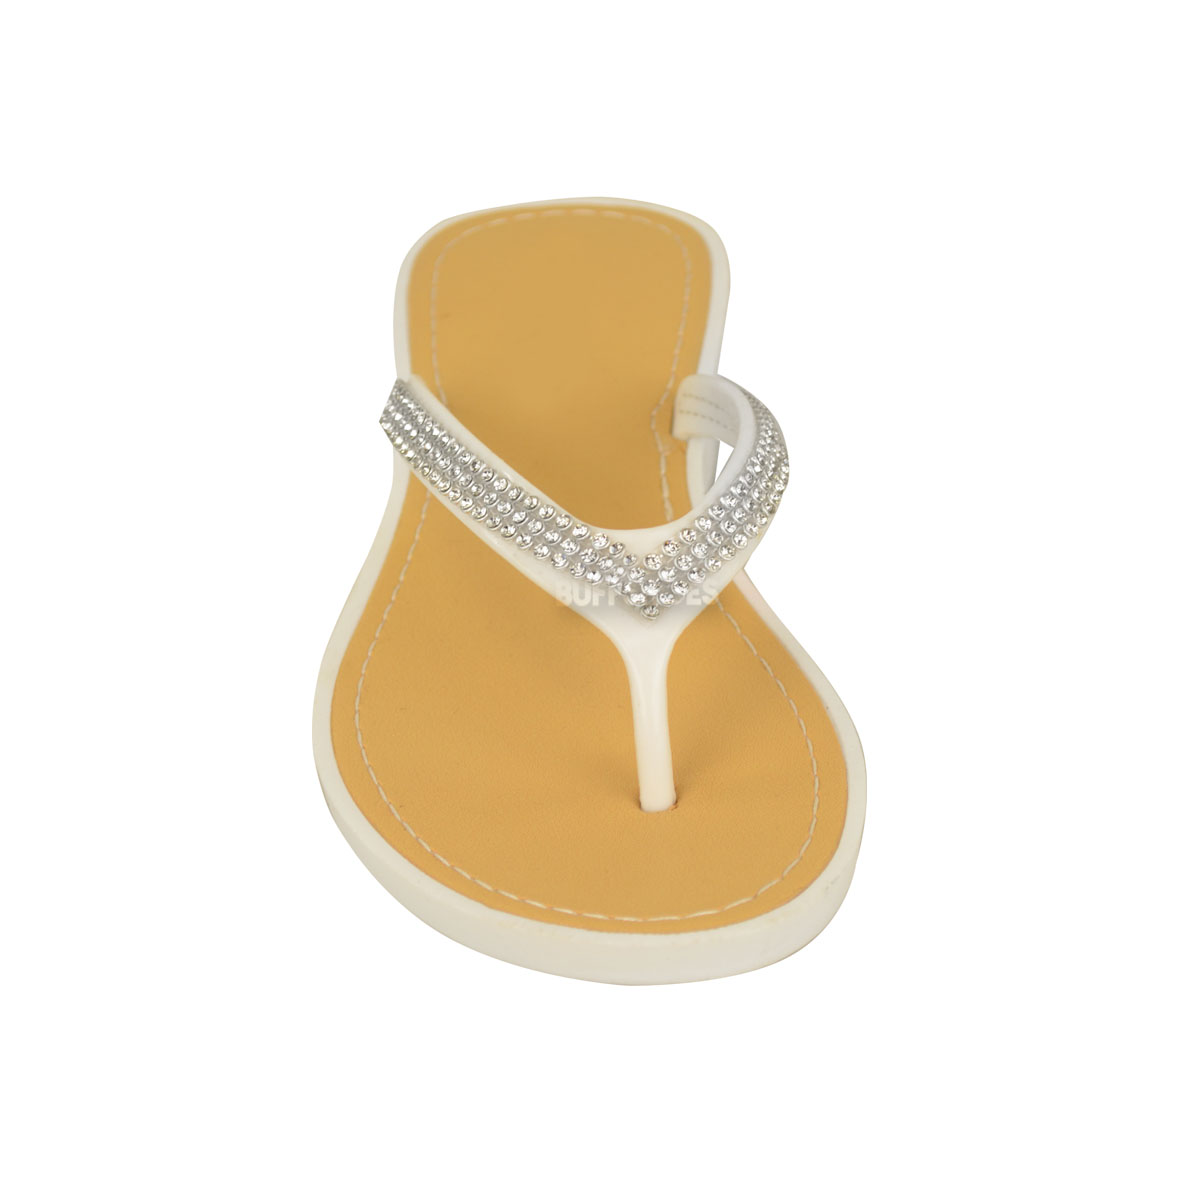 NEW-JELLY-SANDALS-WOMENS-LADIES-DIAMANTE-SUMMER-HOLIDAY-COMFORTS-FLIP-FLOPS-SIZE thumbnail 12